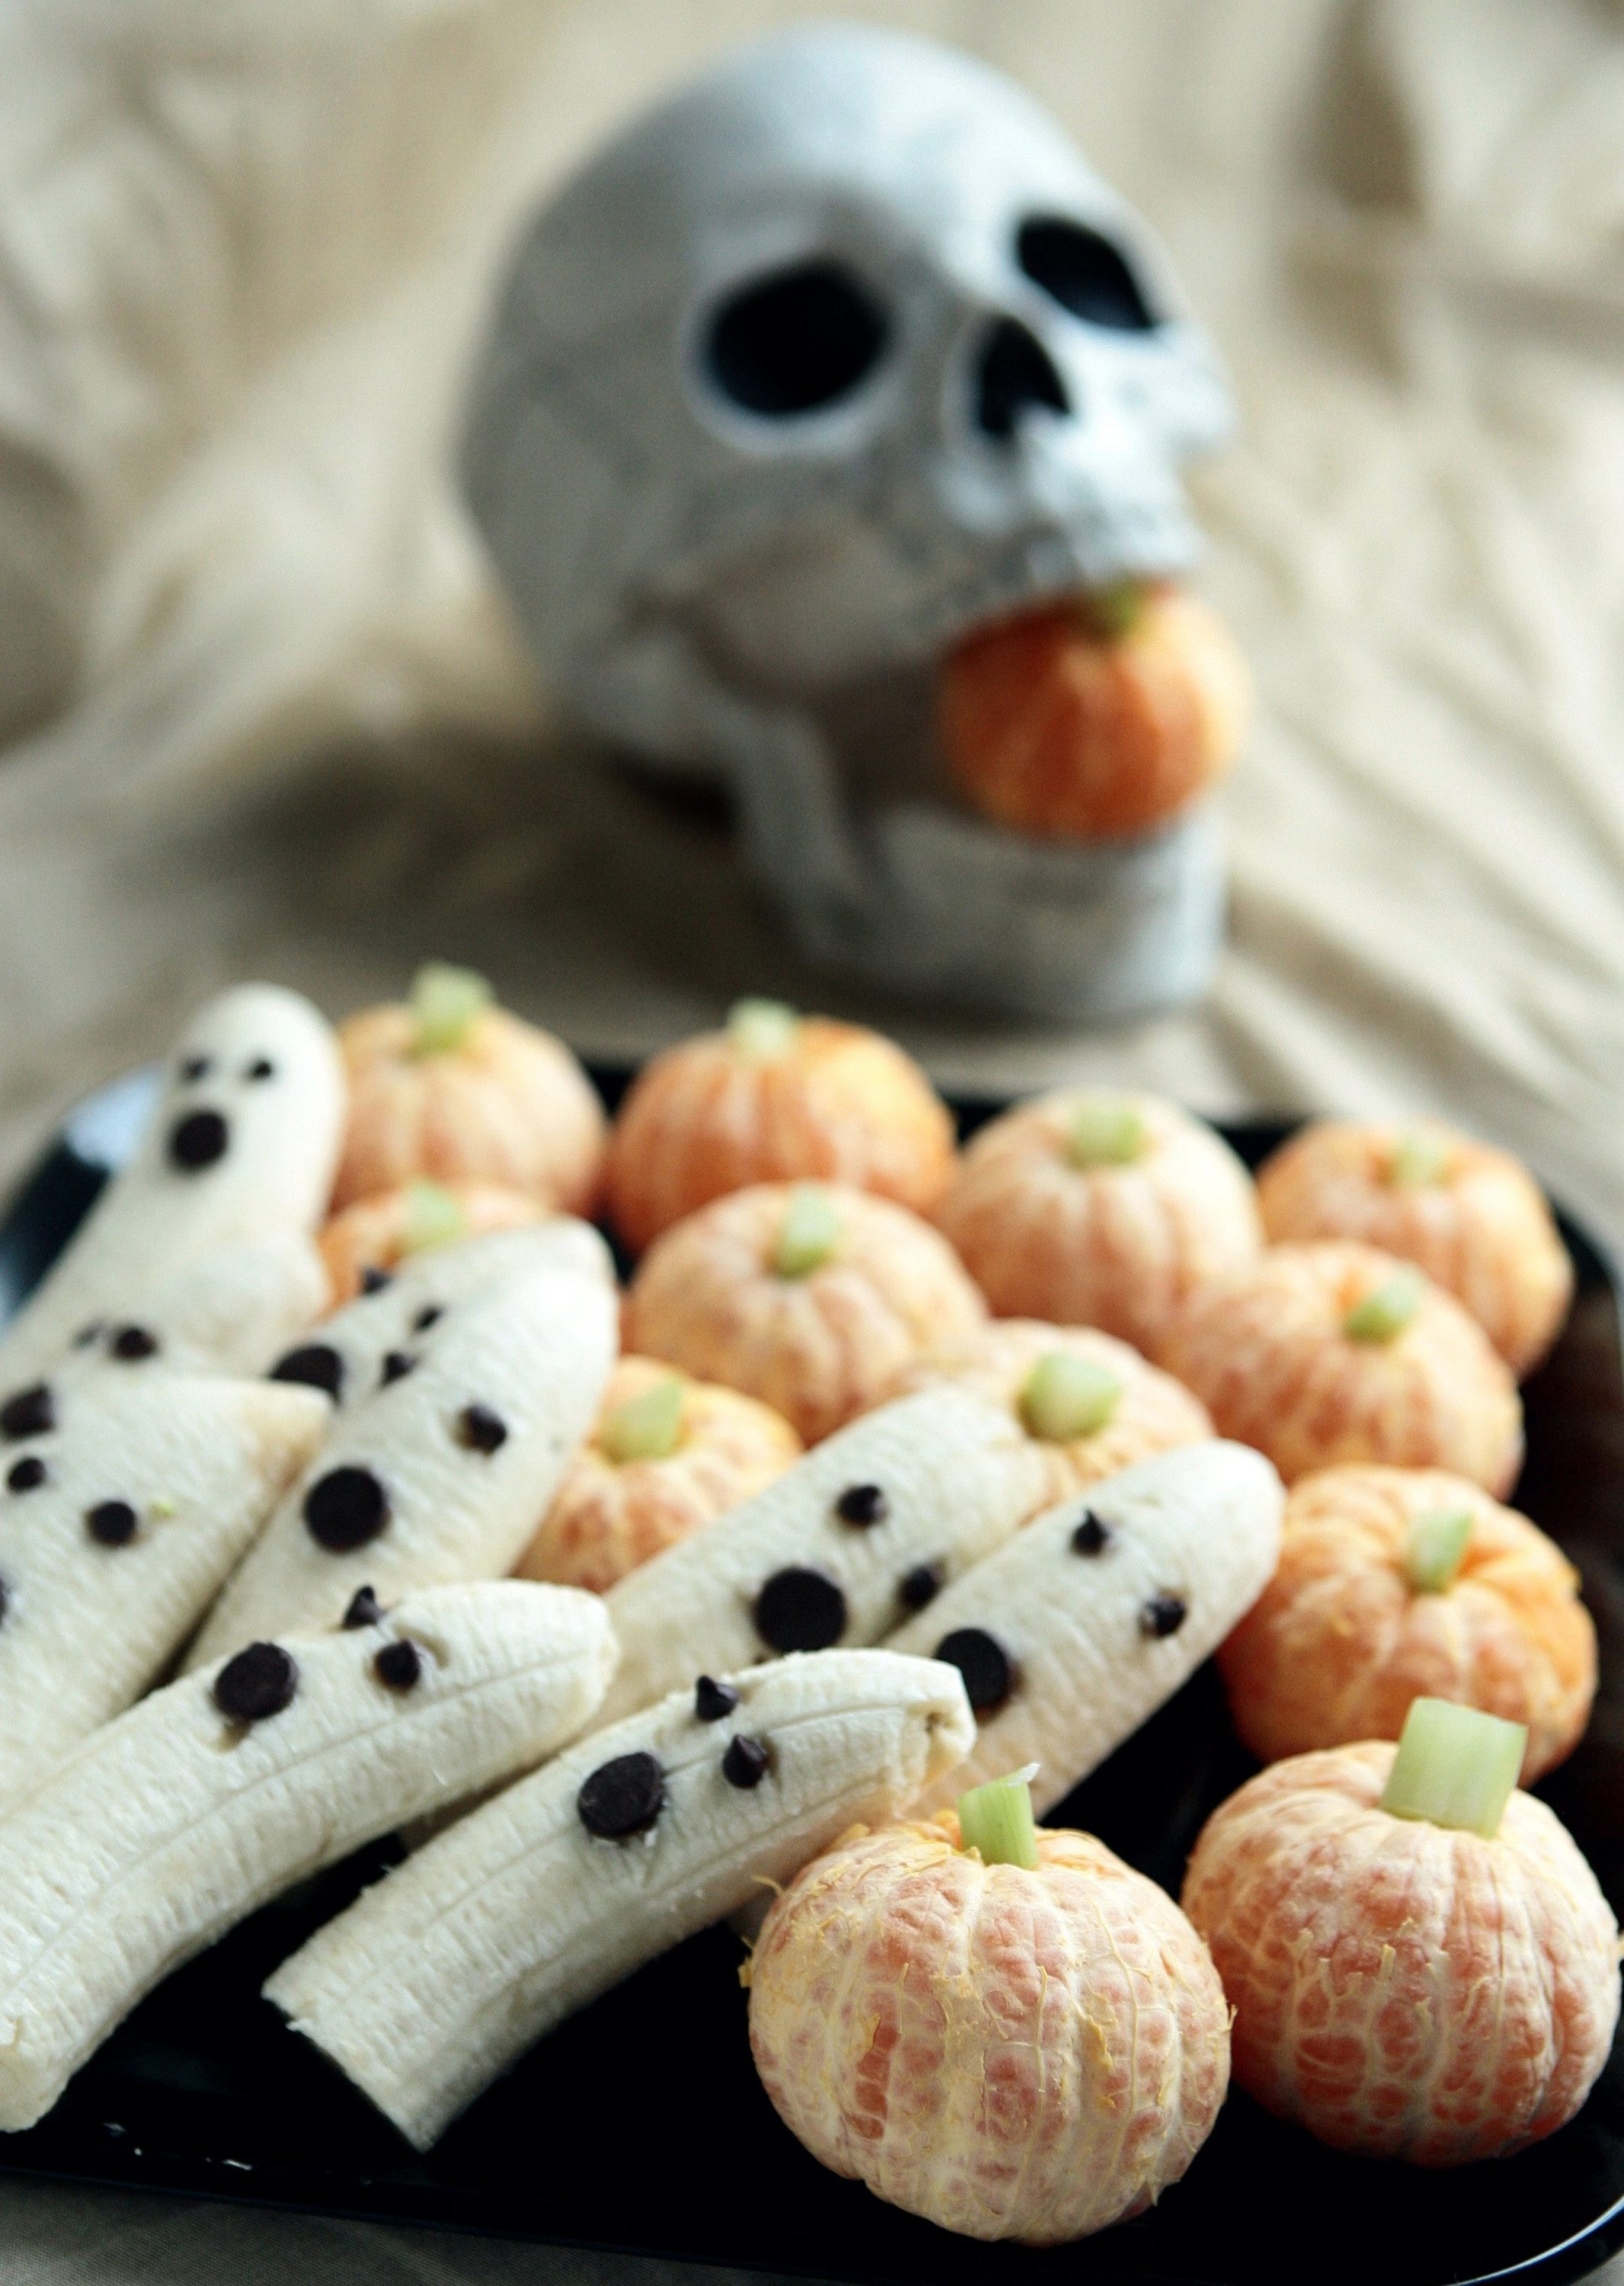 Healthy Halloween treats don't have to be boring. Ghostly bananas taste great with chocolate chip faces and pumpkins made from clementine tangerines with celery stick stems are easy to make with kids. (Hillary Levin/St. Louis Post-Dispatch/MCT)